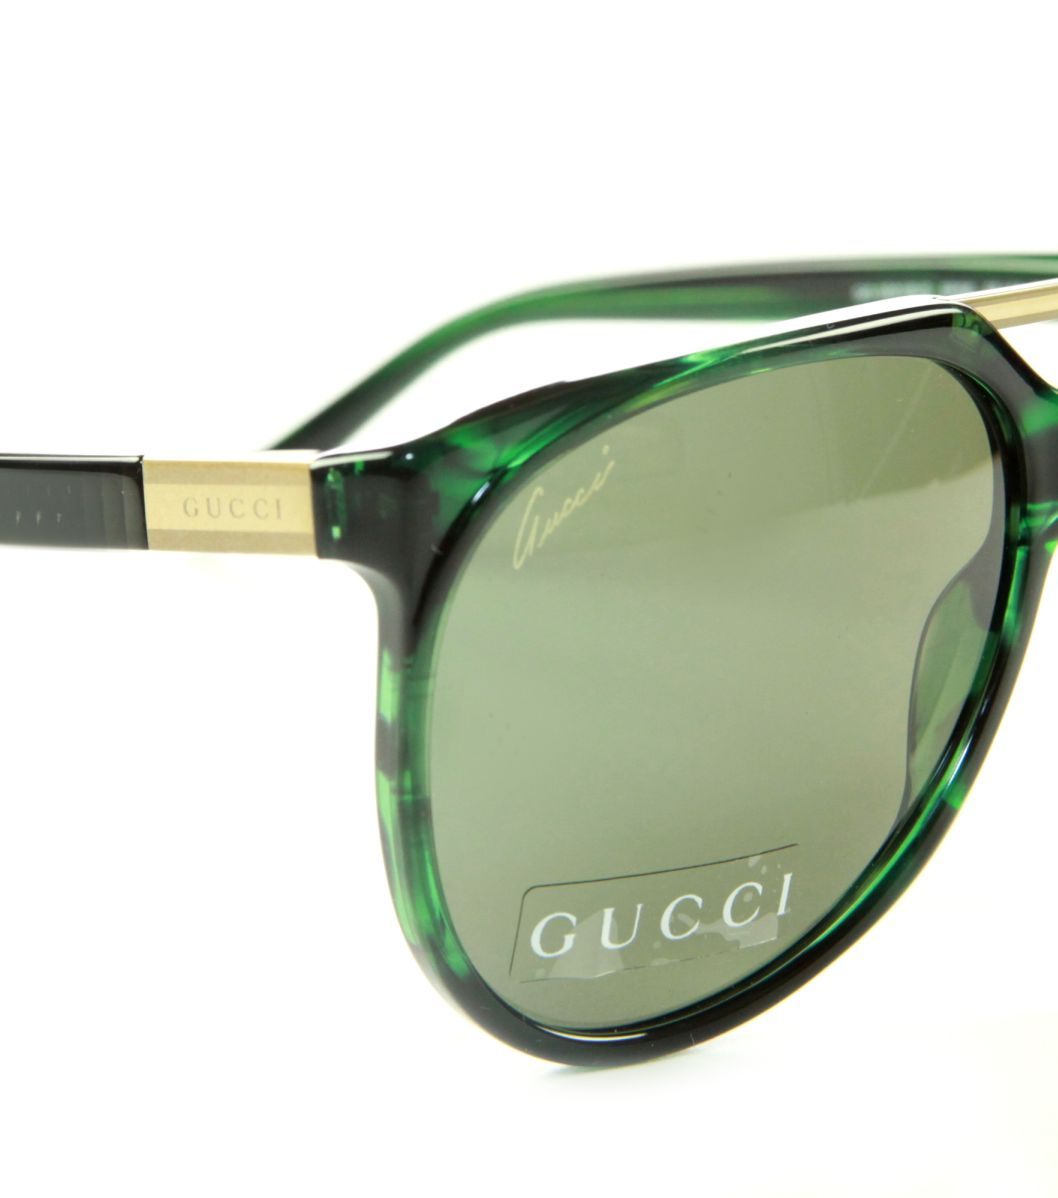 gucci designer lunettes de soleil femme homme la havane vert gg 3501 b s 9p5 ebay. Black Bedroom Furniture Sets. Home Design Ideas